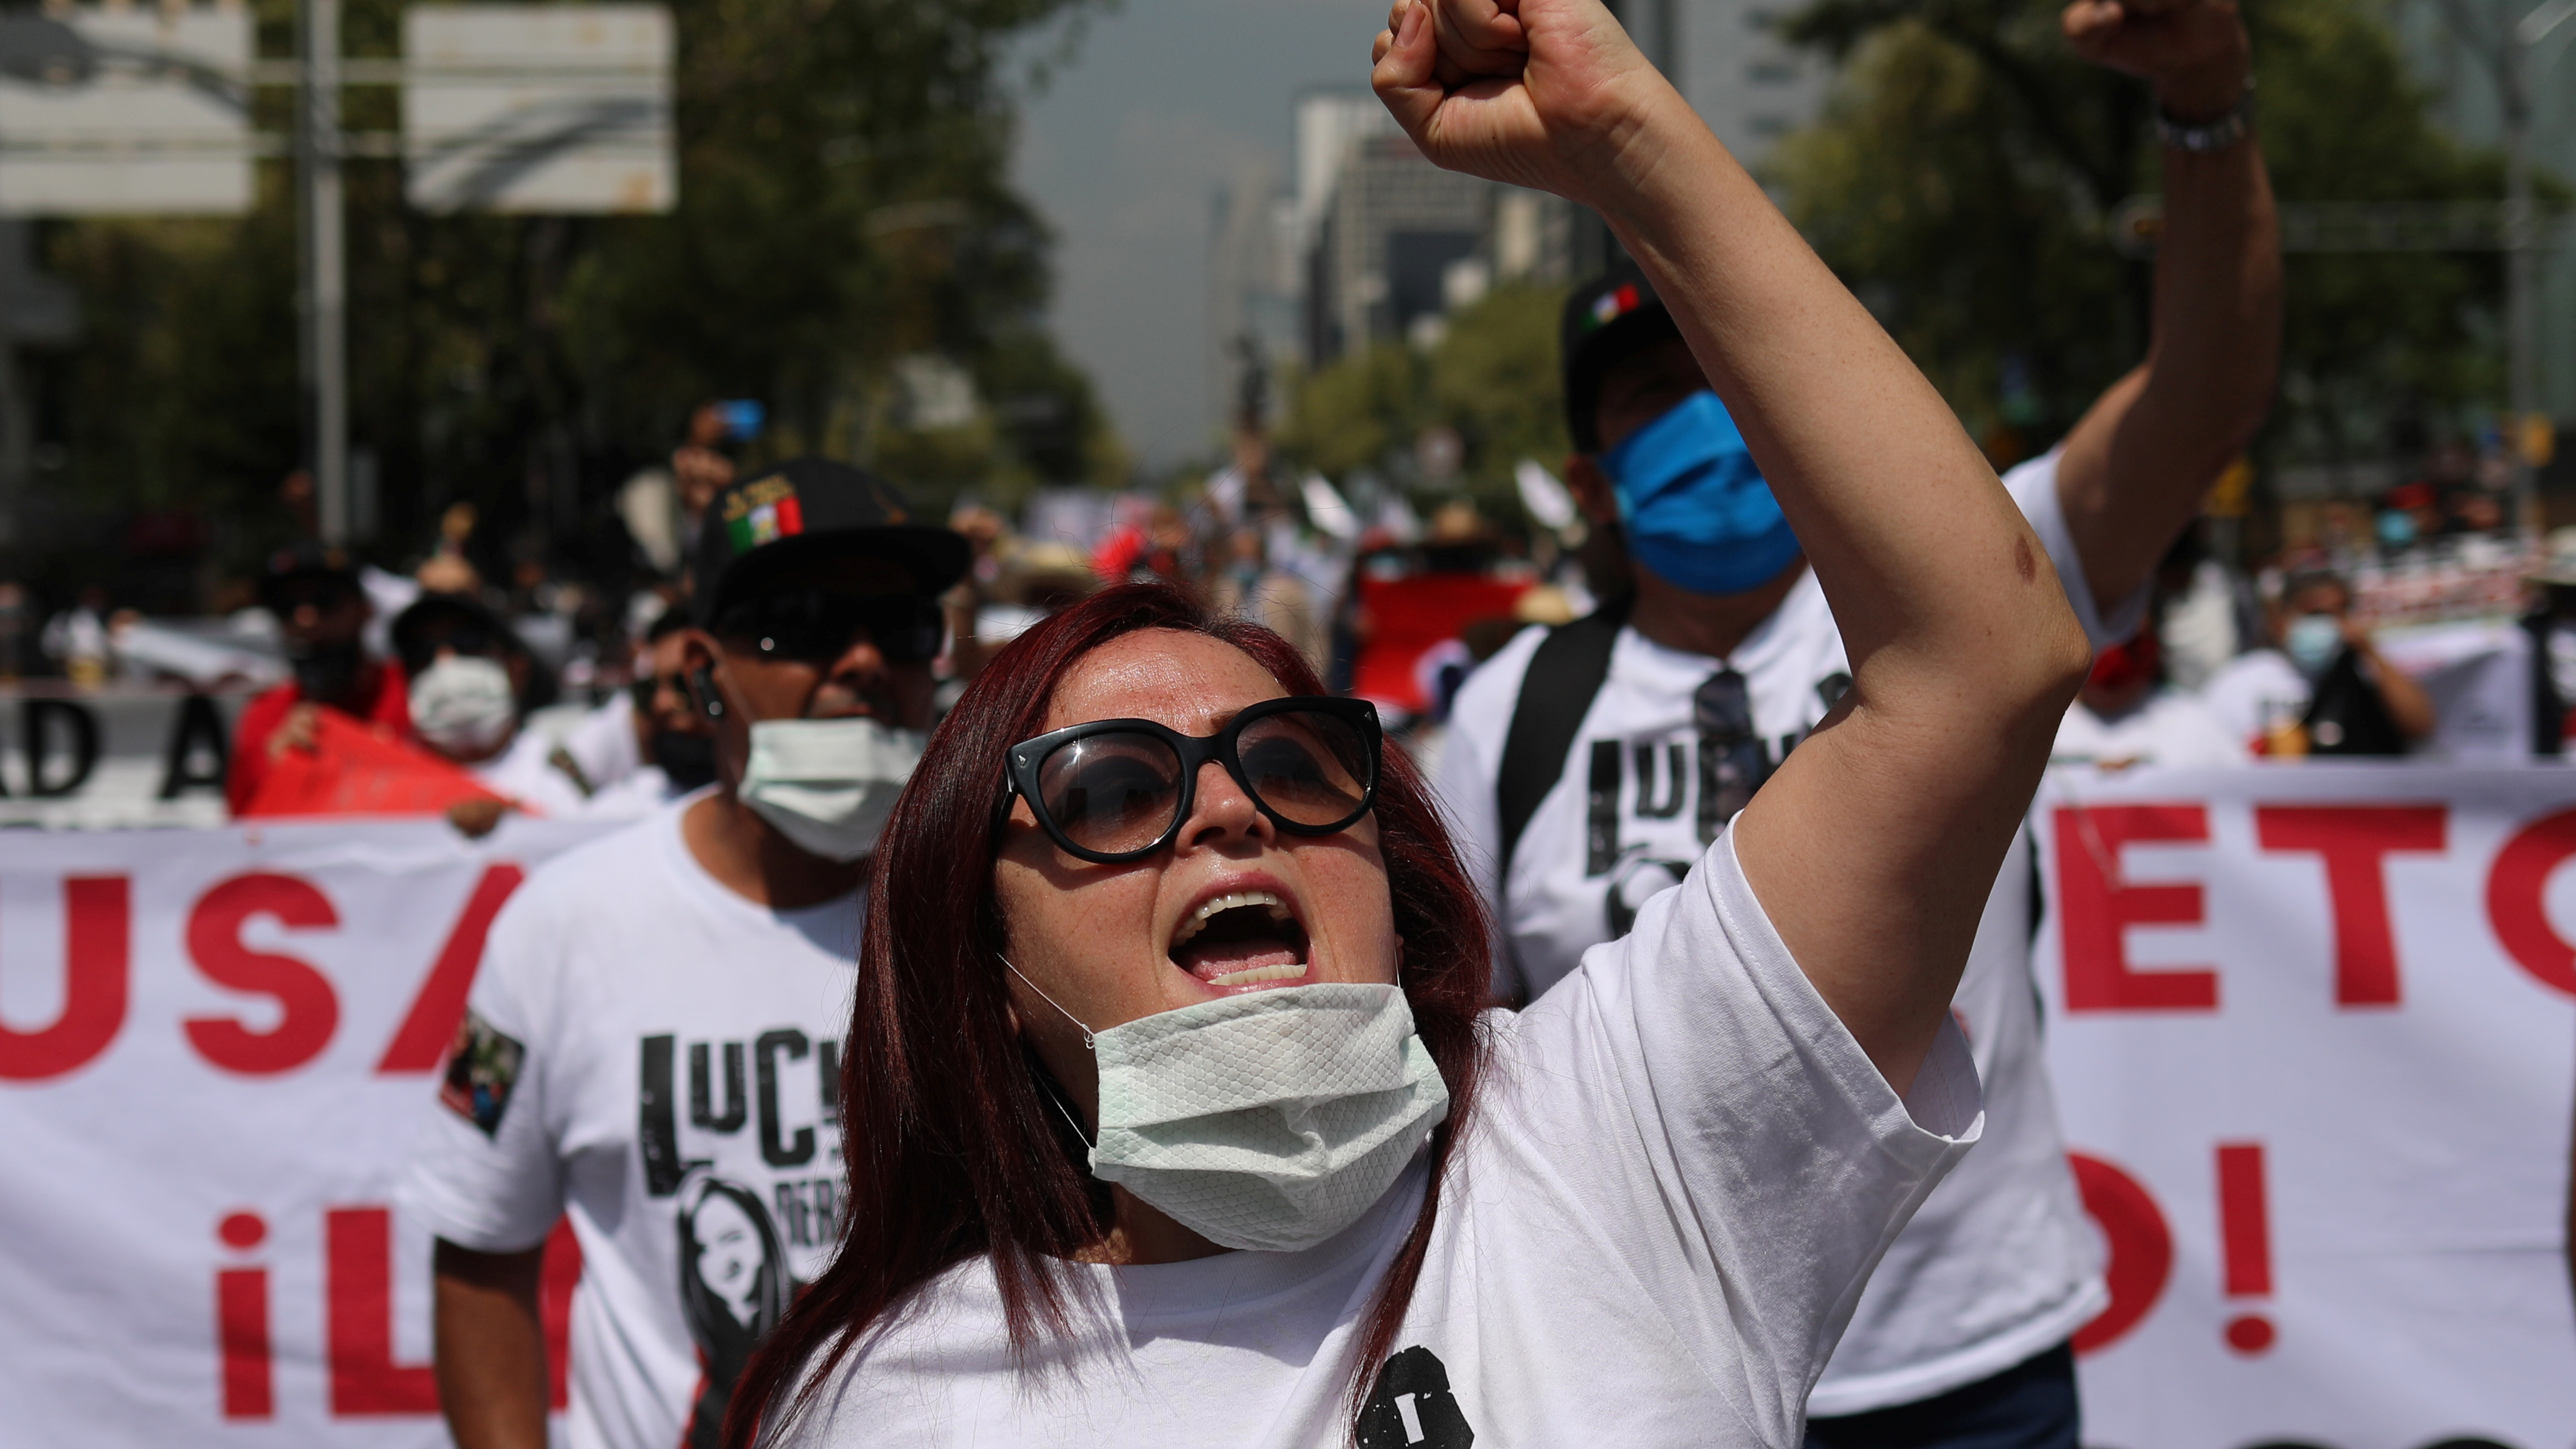 Mexican labor lawyer Susana Prieto leads a demonstration with supporters and workers along the streets as she said she is fighting to prove her innocence following criminal charges in the northern state of Tamaulipas, in Mexico City, Mexico